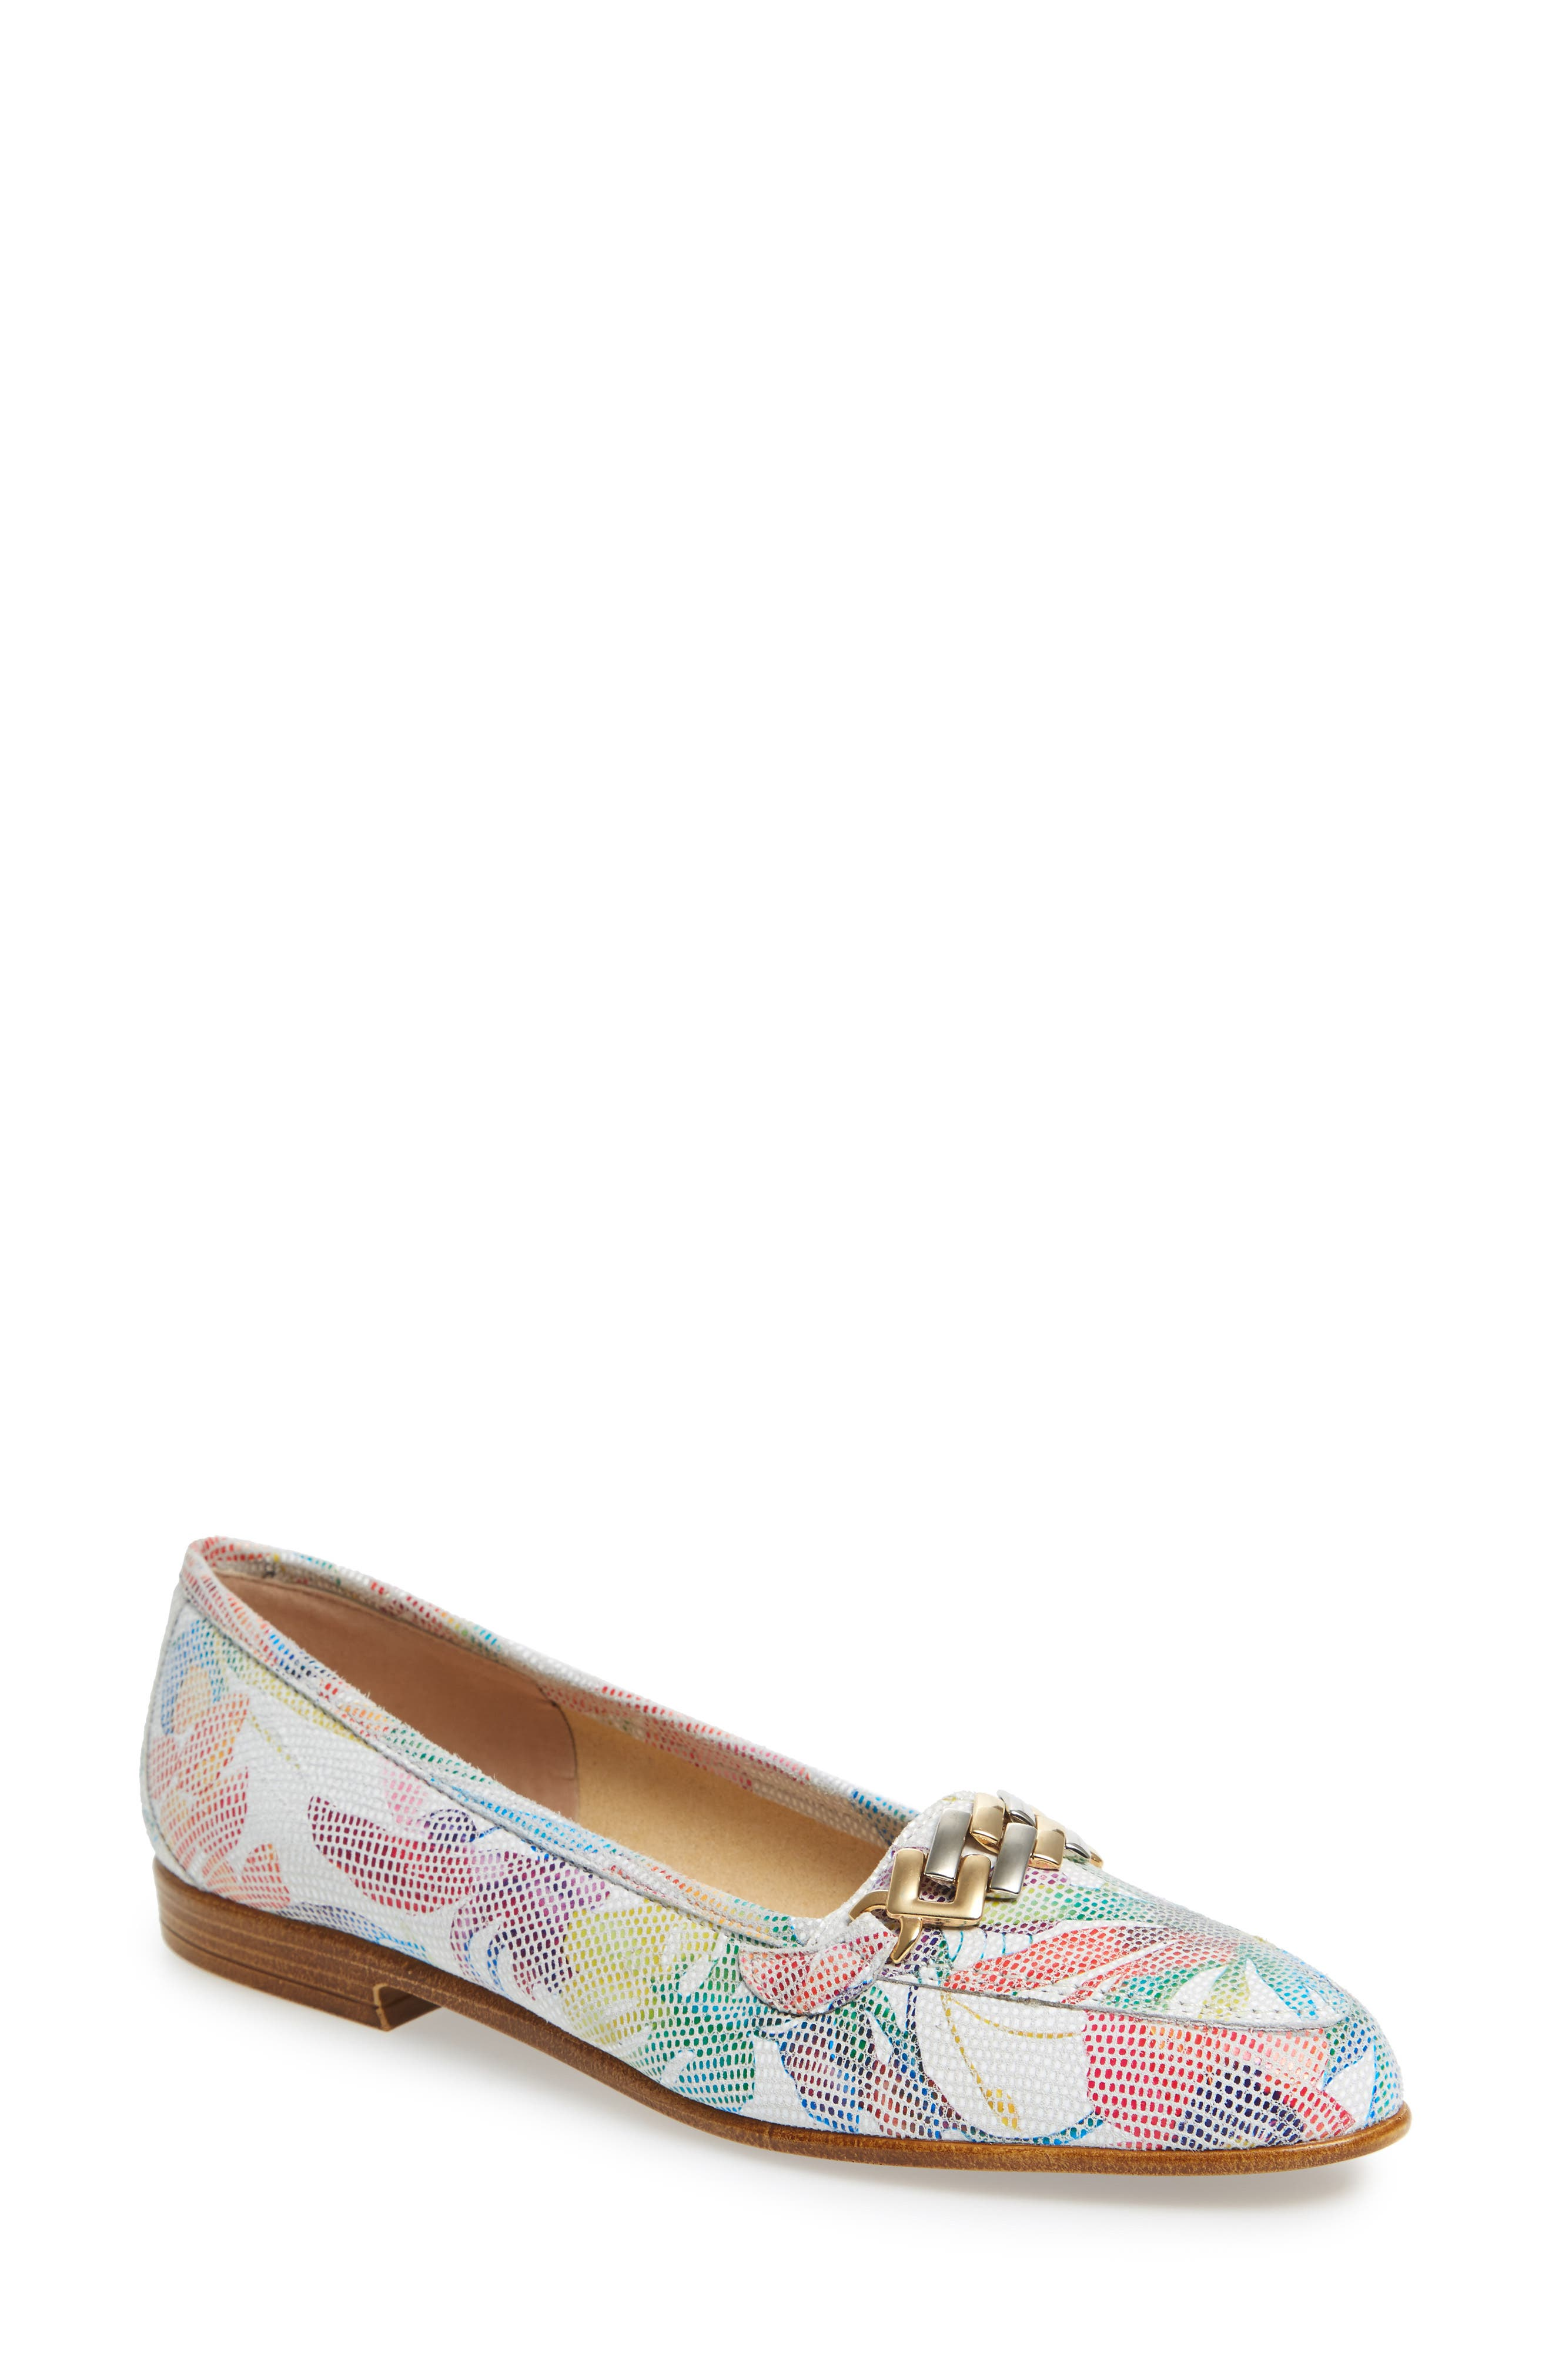 AMALFI BY RANGONI Oste Loafer, Main, color, WHITE LEATHER